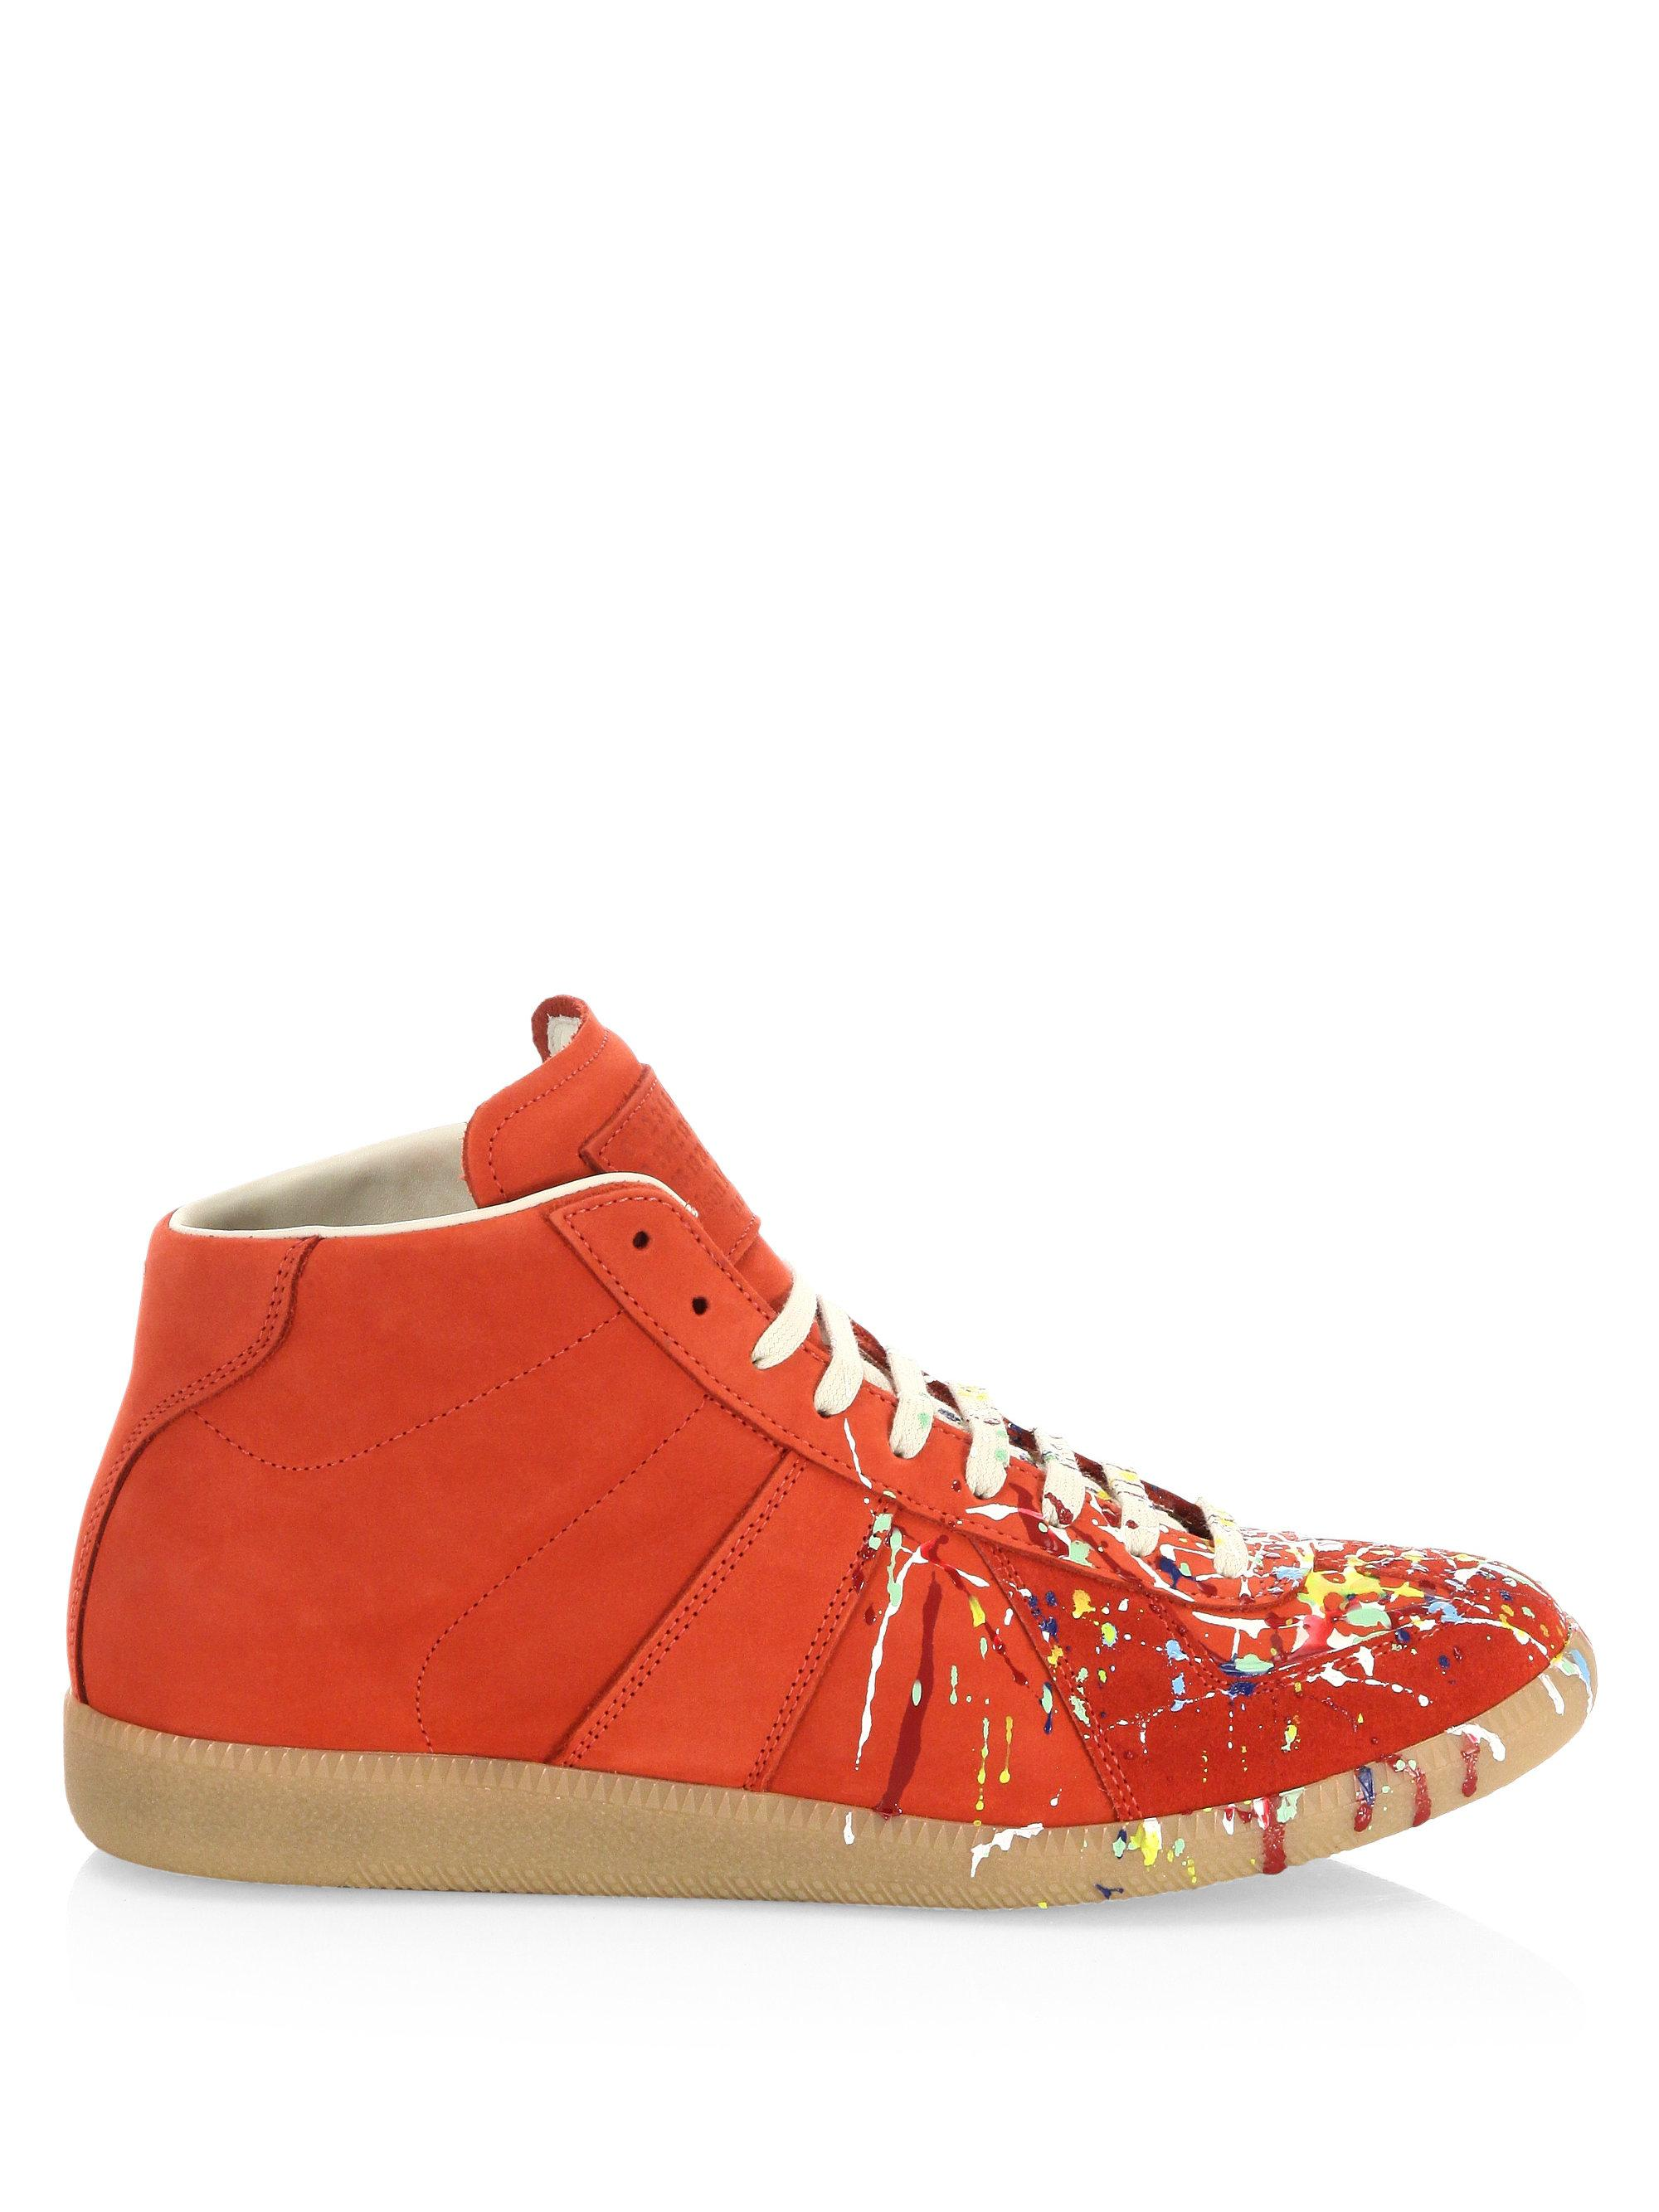 For Sale Online Replica sneakers - Yellow & Orange Maison Martin Margiela Sale Pay With Visa iH8CTVHwM